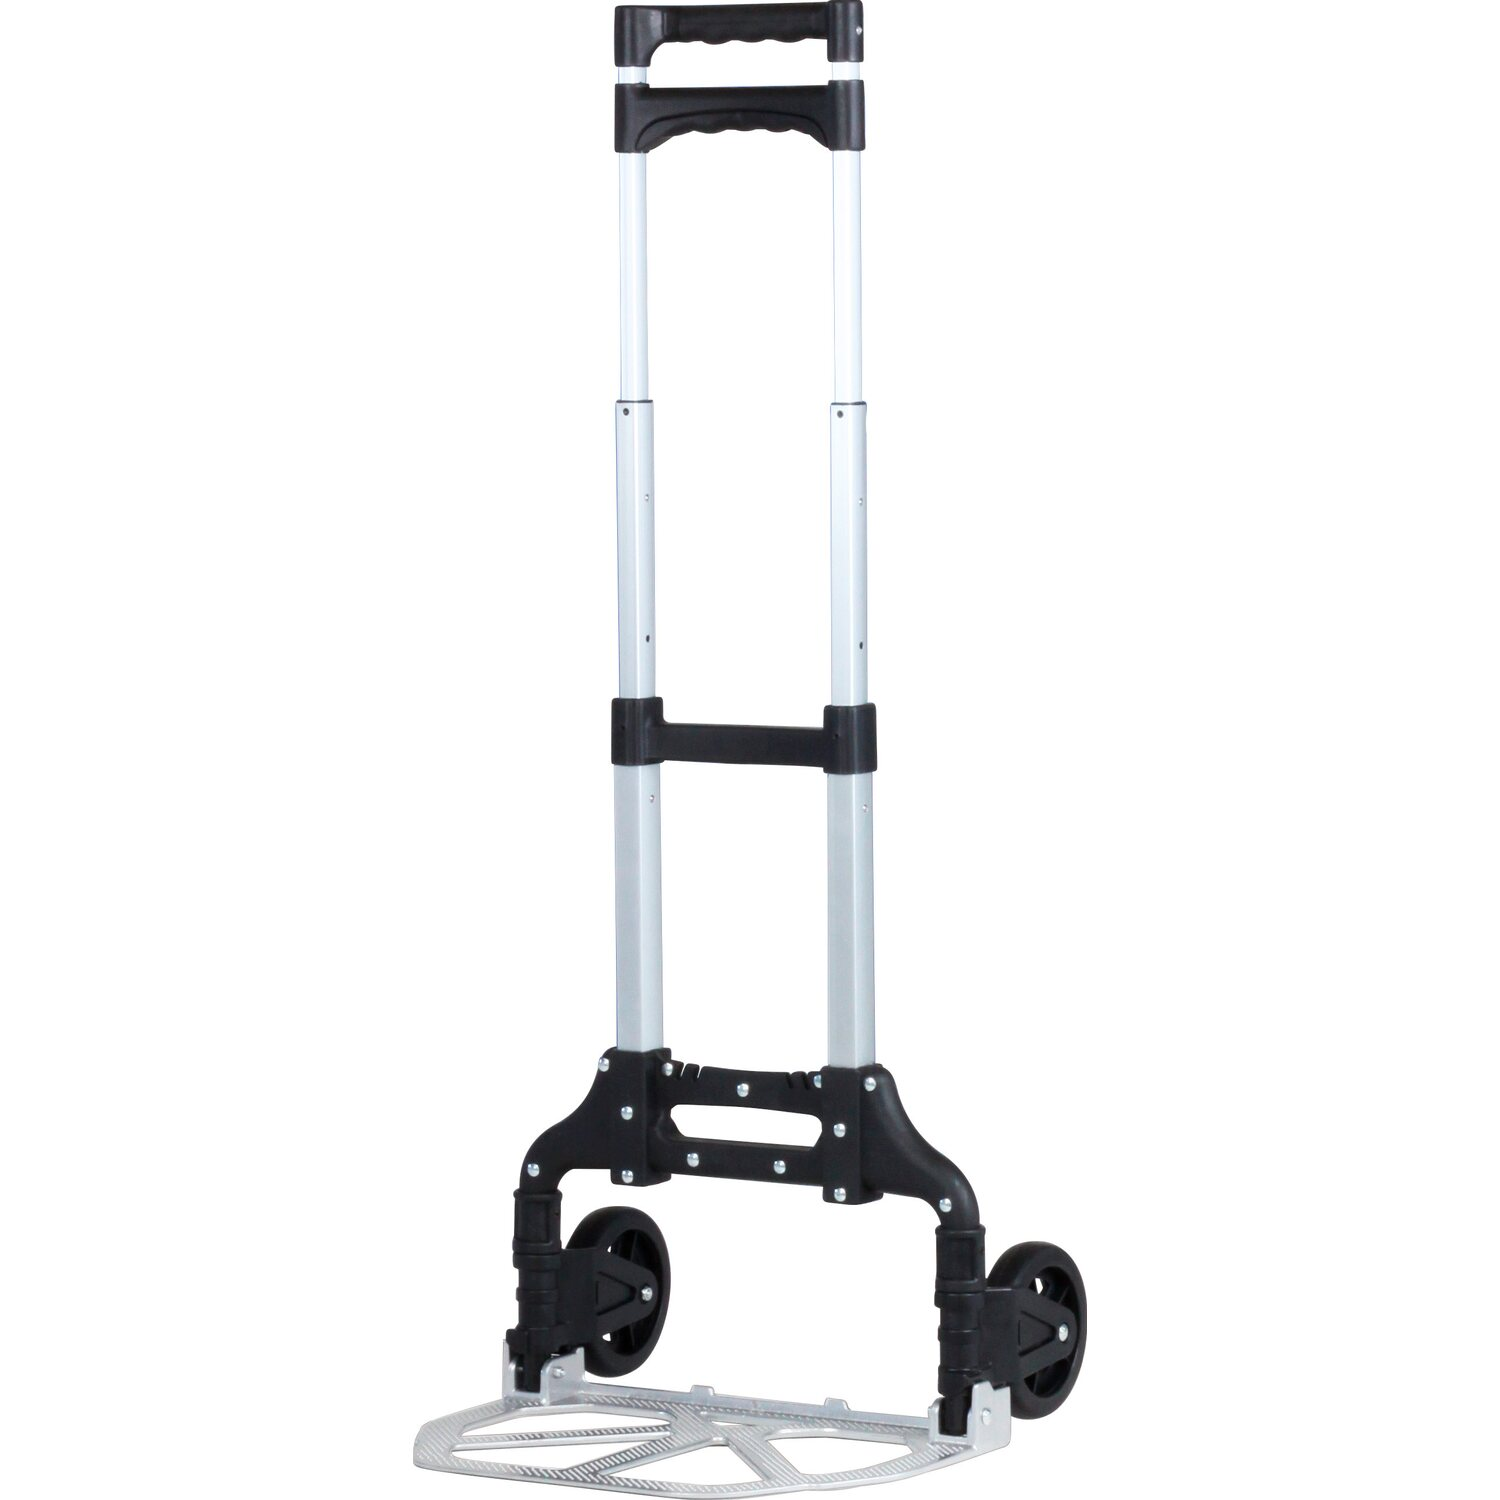 Carrello richiudibile compact 70 acquista da obi for Carrello bricoman